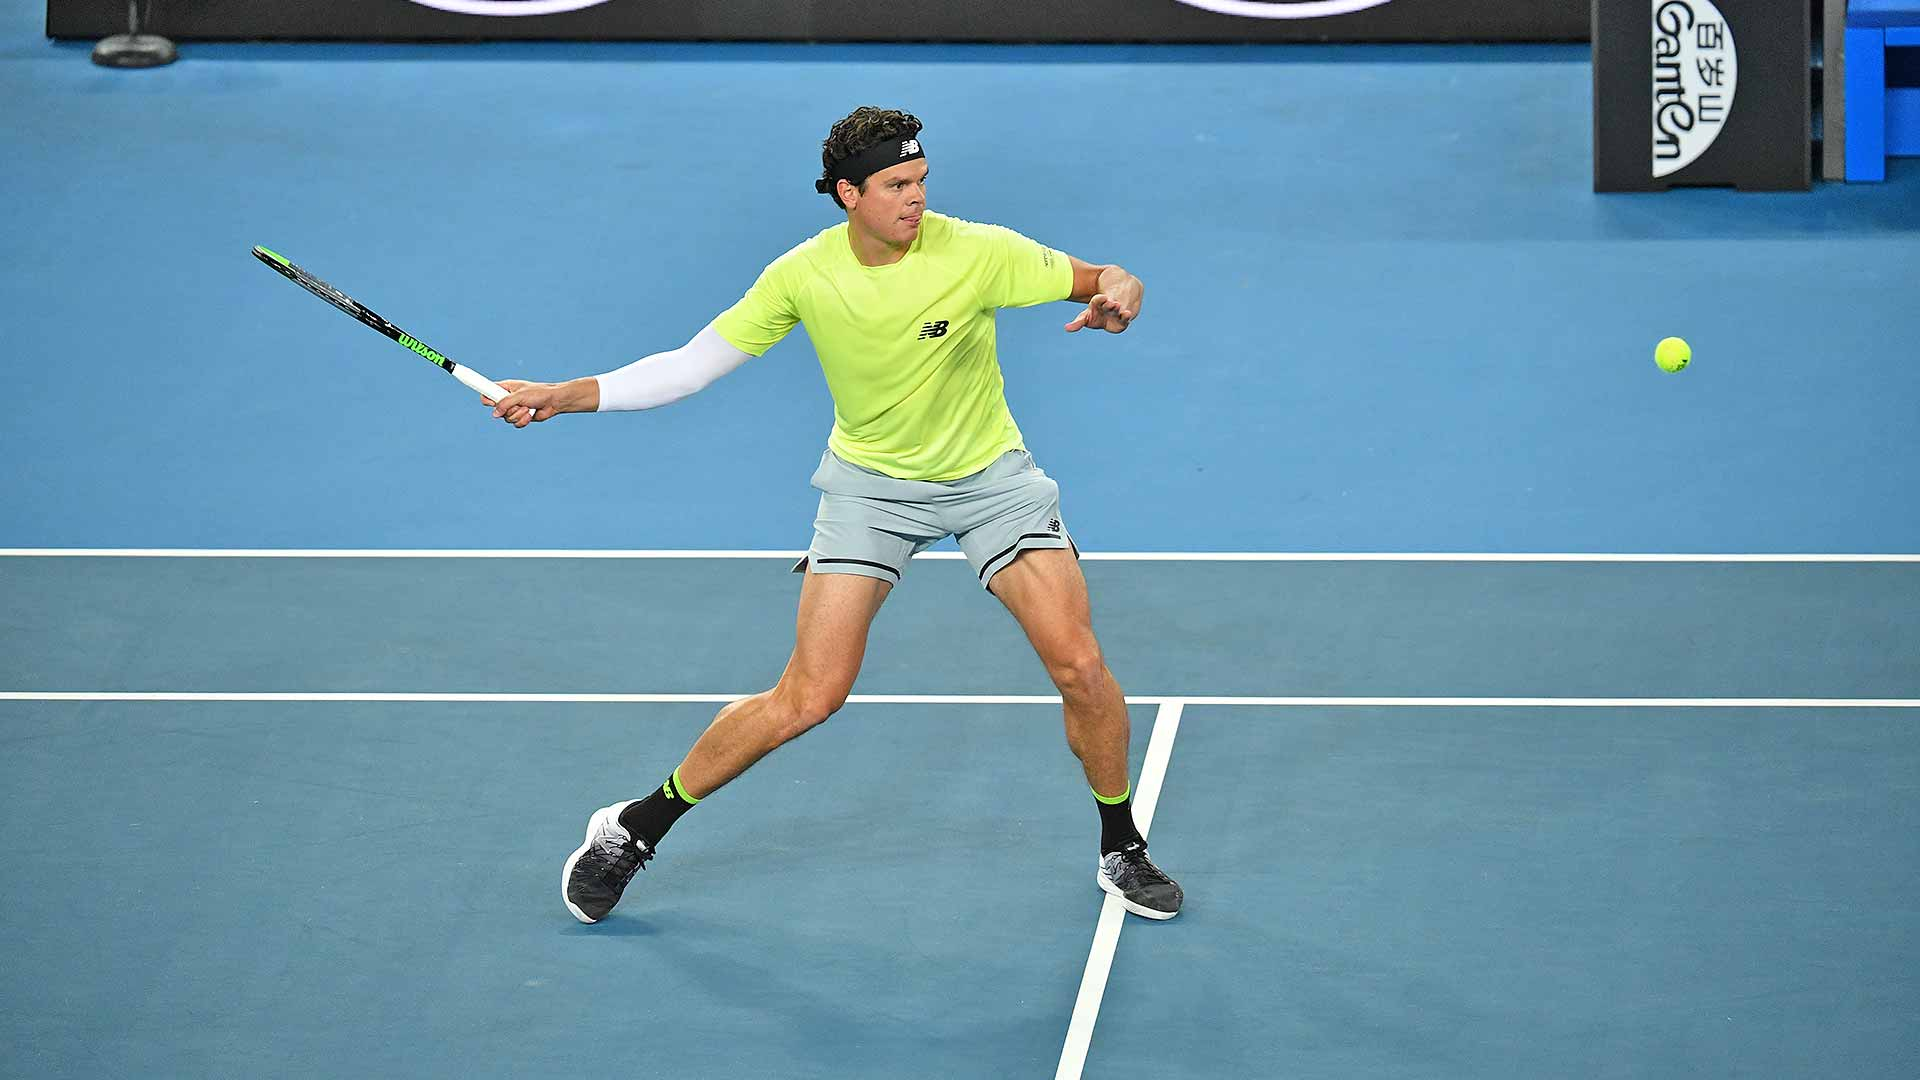 Milos Raonic has reached the Australian Open quarter-finals or better in four of the past five years.